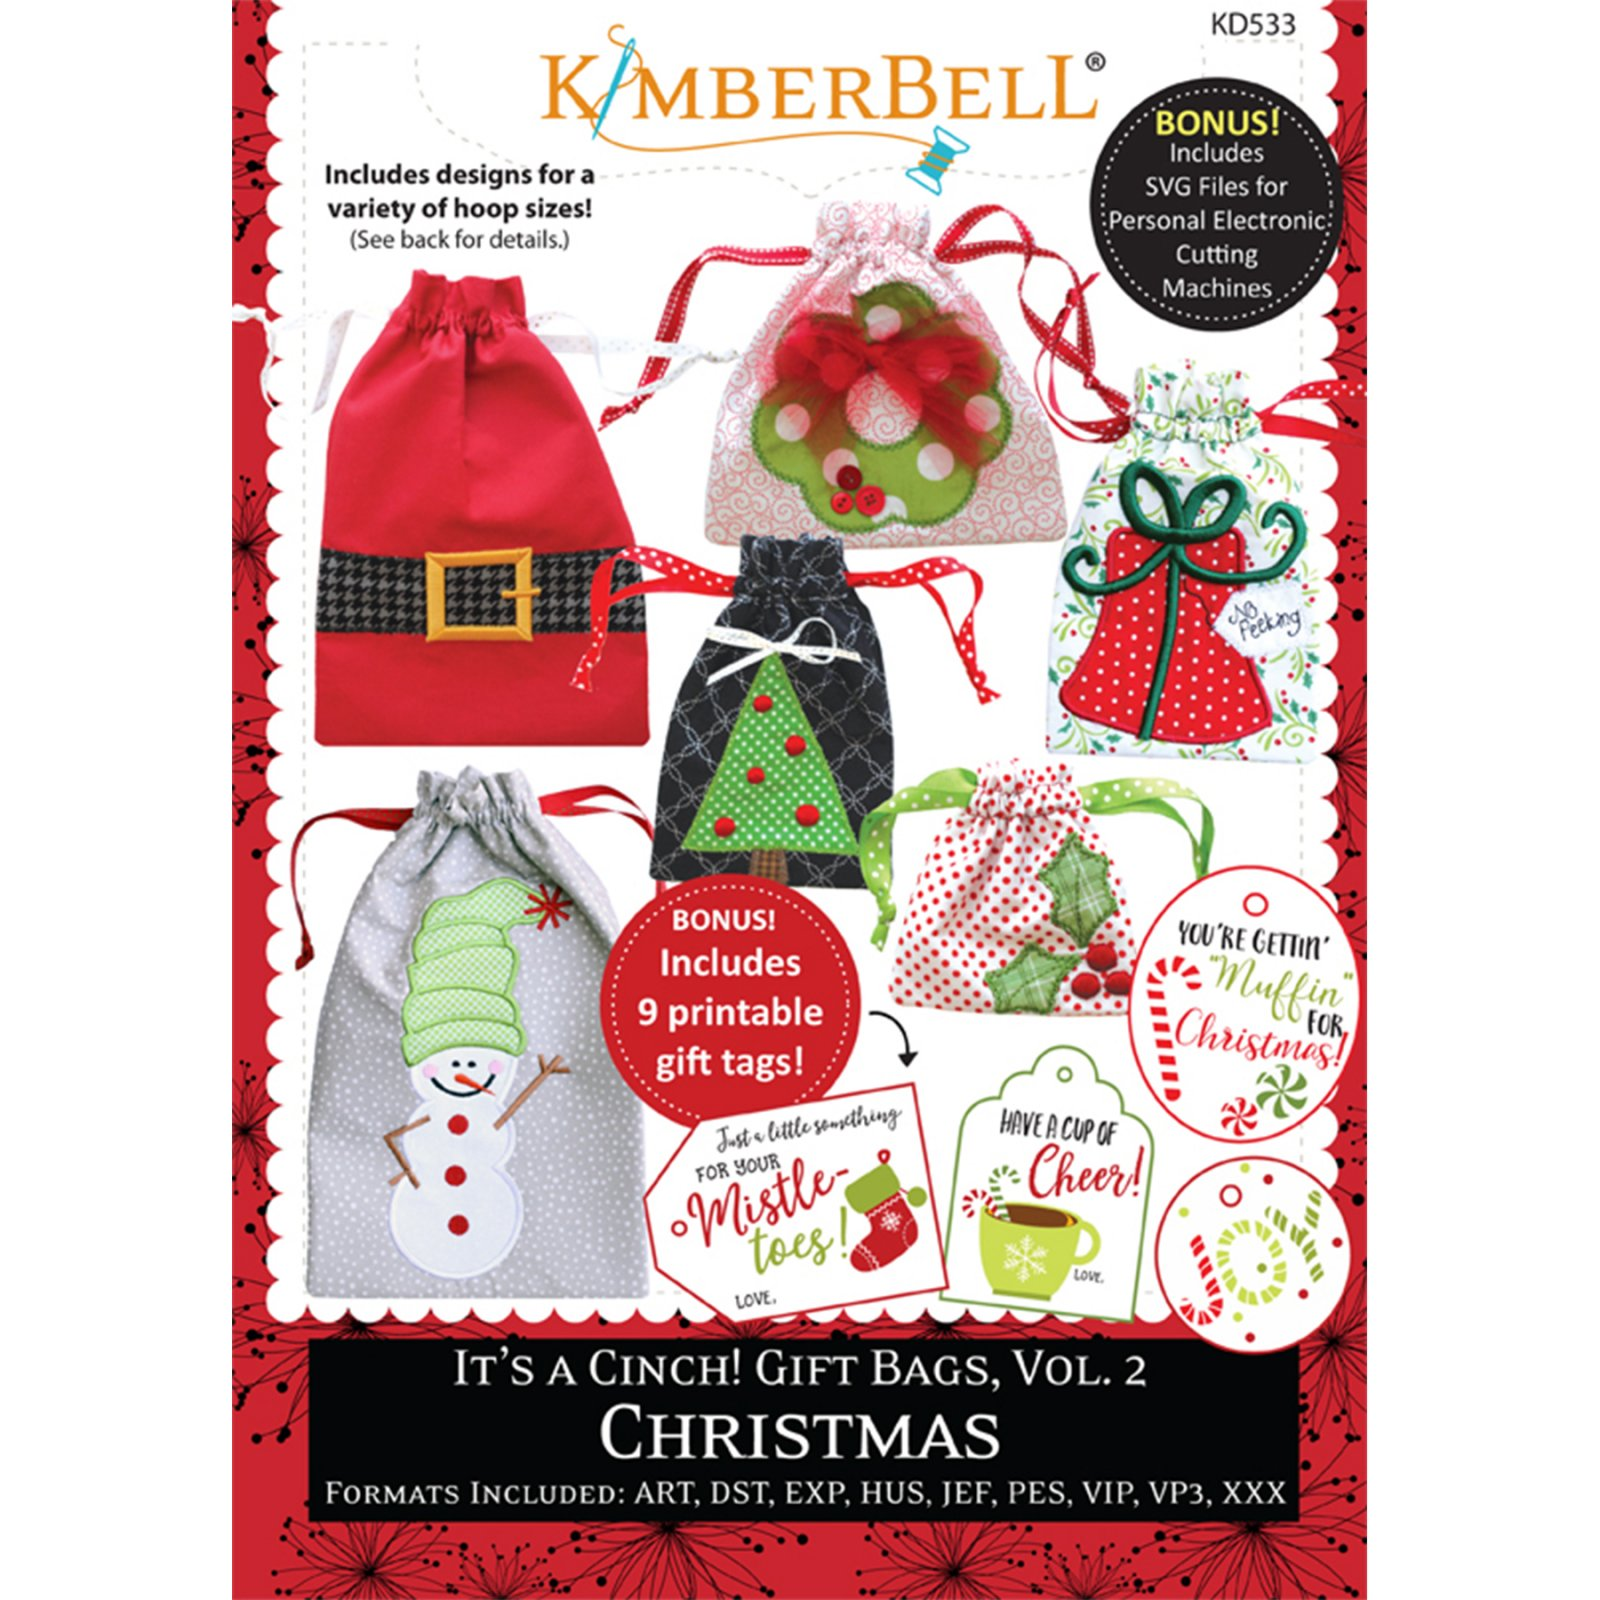 KimberBell It's a Cinch! Gift Bags